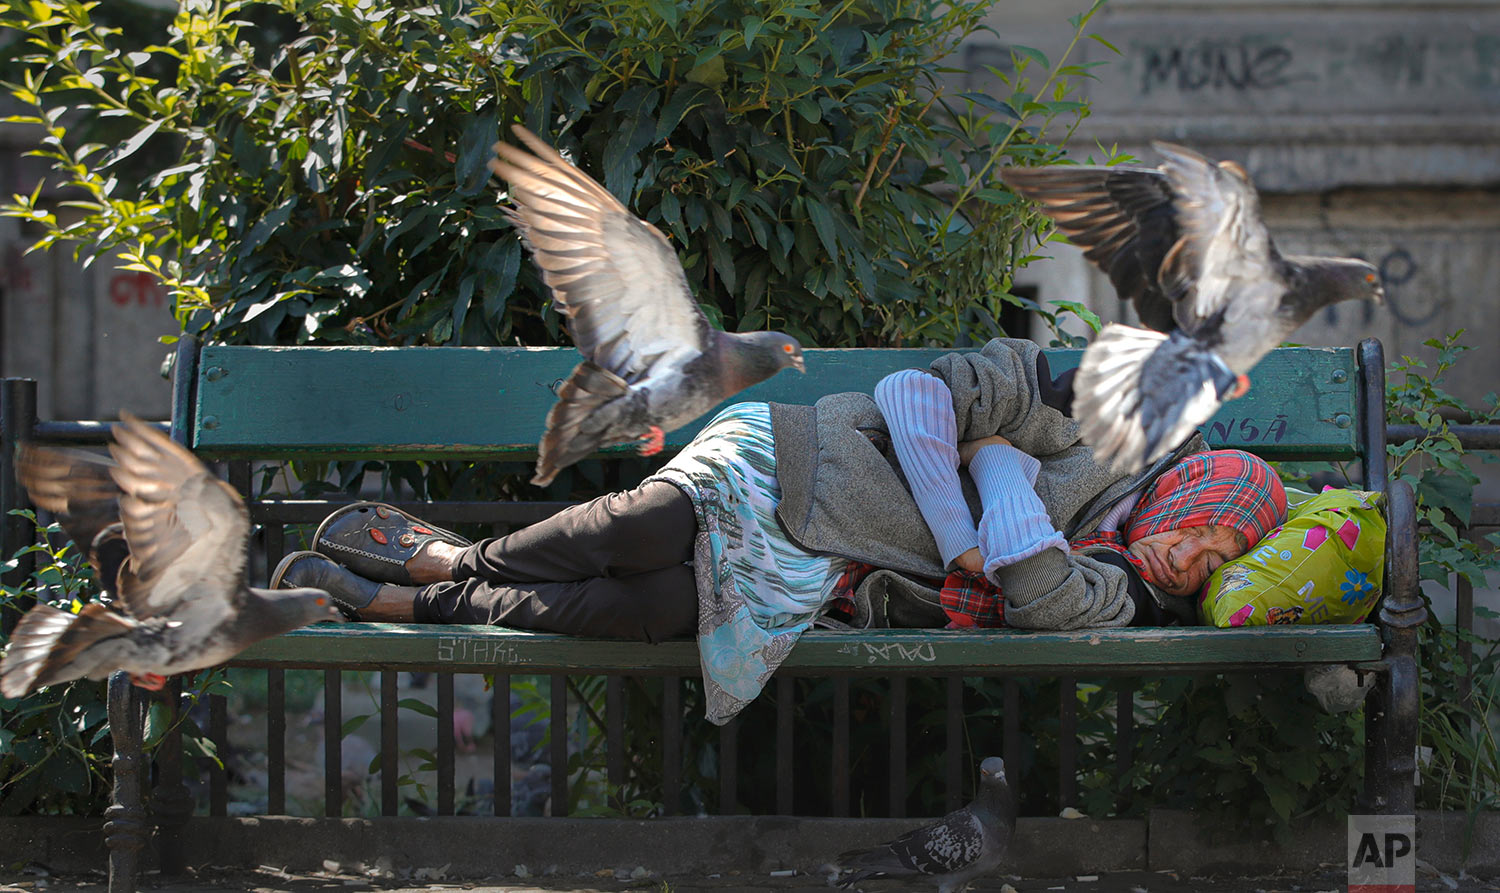 Pigeons fly past a woman sleeping on a bench on a hot day in Bucharest, Romania, Wednesday, Aug. 7, 2019. The national weather authority issued a heat wave warning with temperatures expected to rise above 35 degrees Centigrade (95 Fahrenheit) in the shade in the coming days. (AP Photo/Vadim Ghirda)